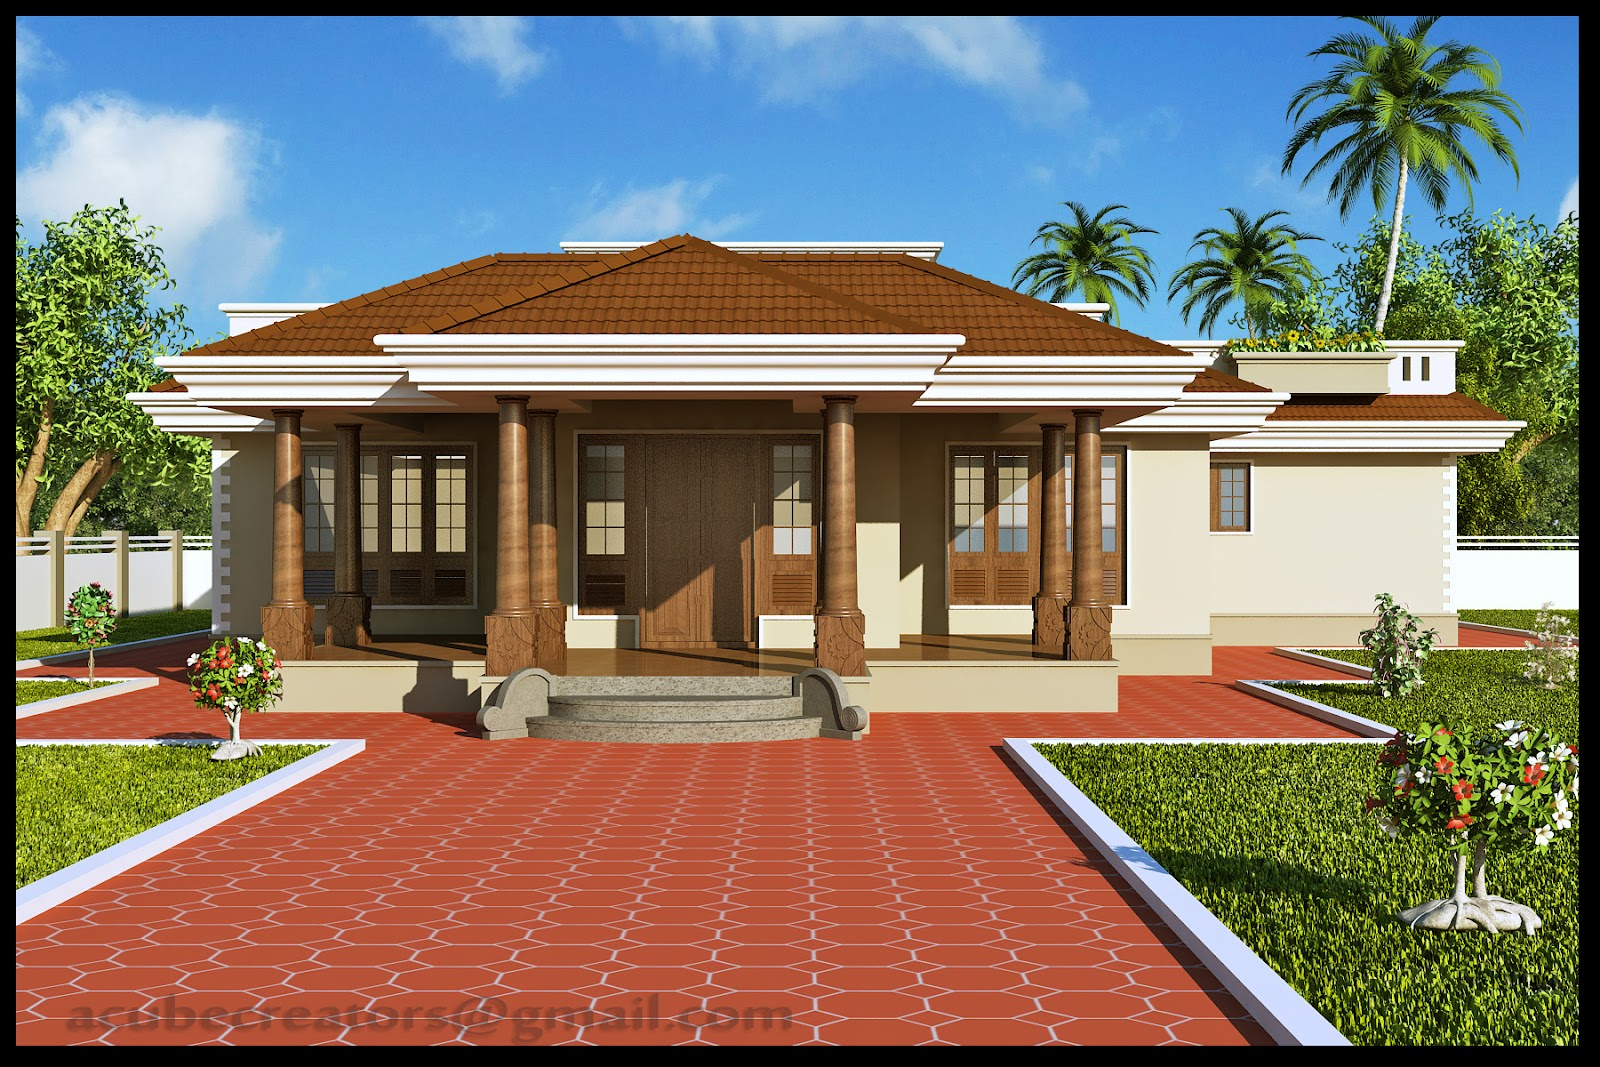 Kerala style single floor house 2165 sq ft plan 112 for Single floor house